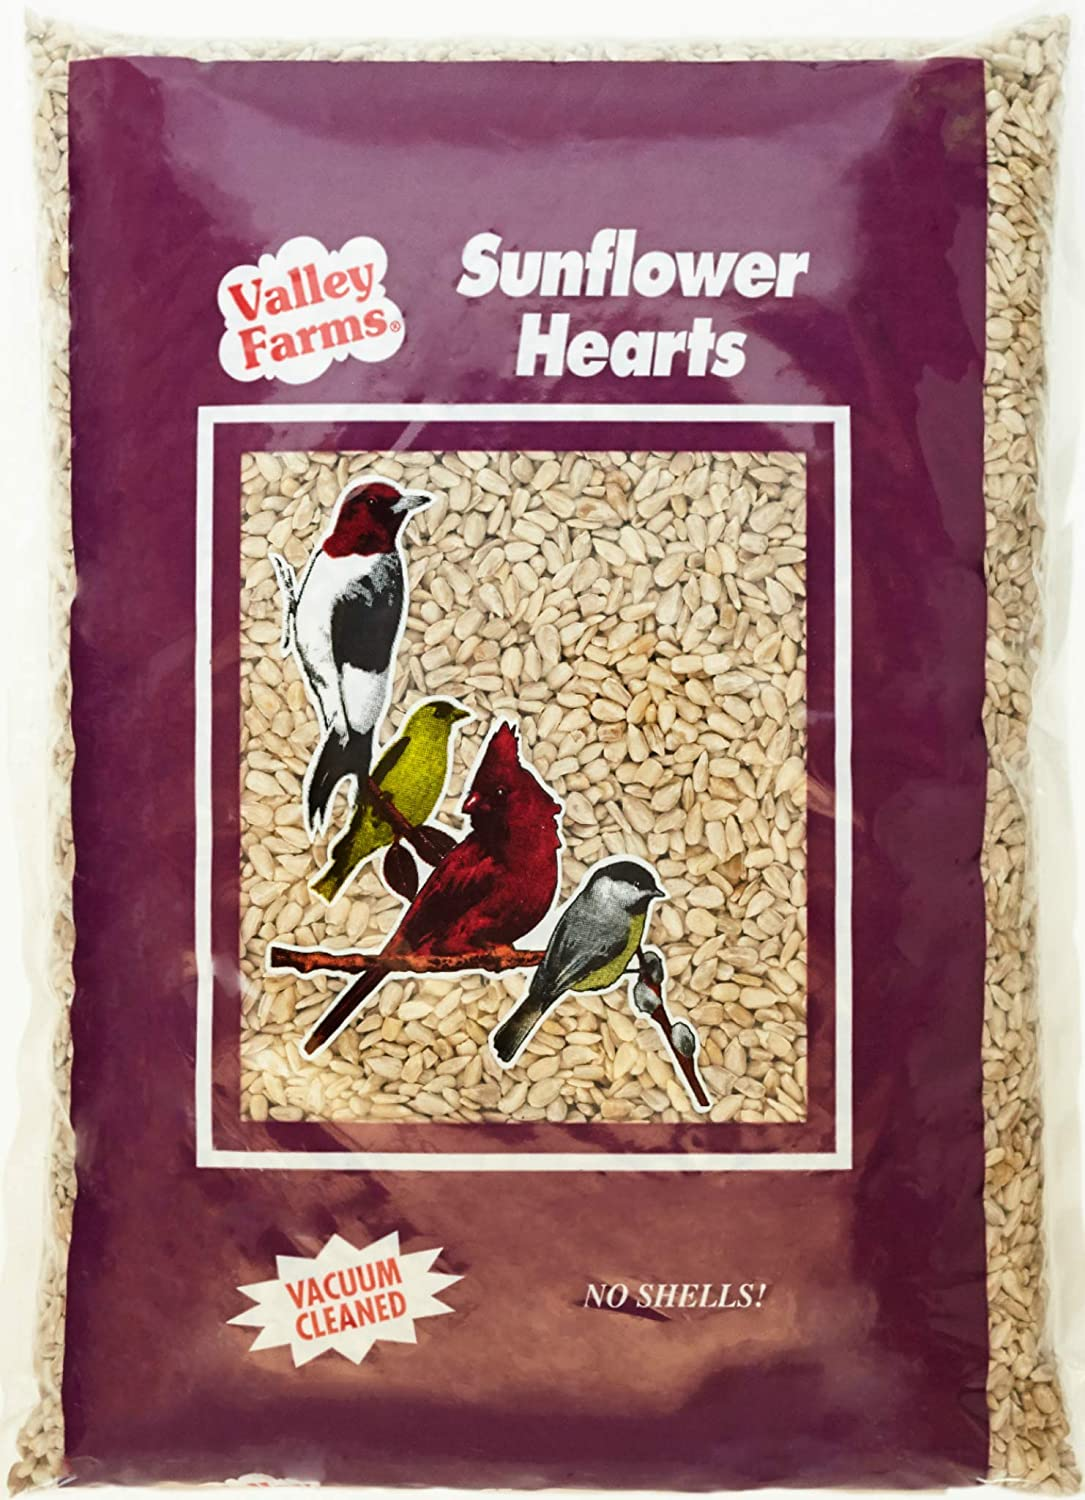 Valley Farms Sunflower Hearts Wild LBS Food Max Manufacturer OFFicial shop 59% OFF - 4 Bird